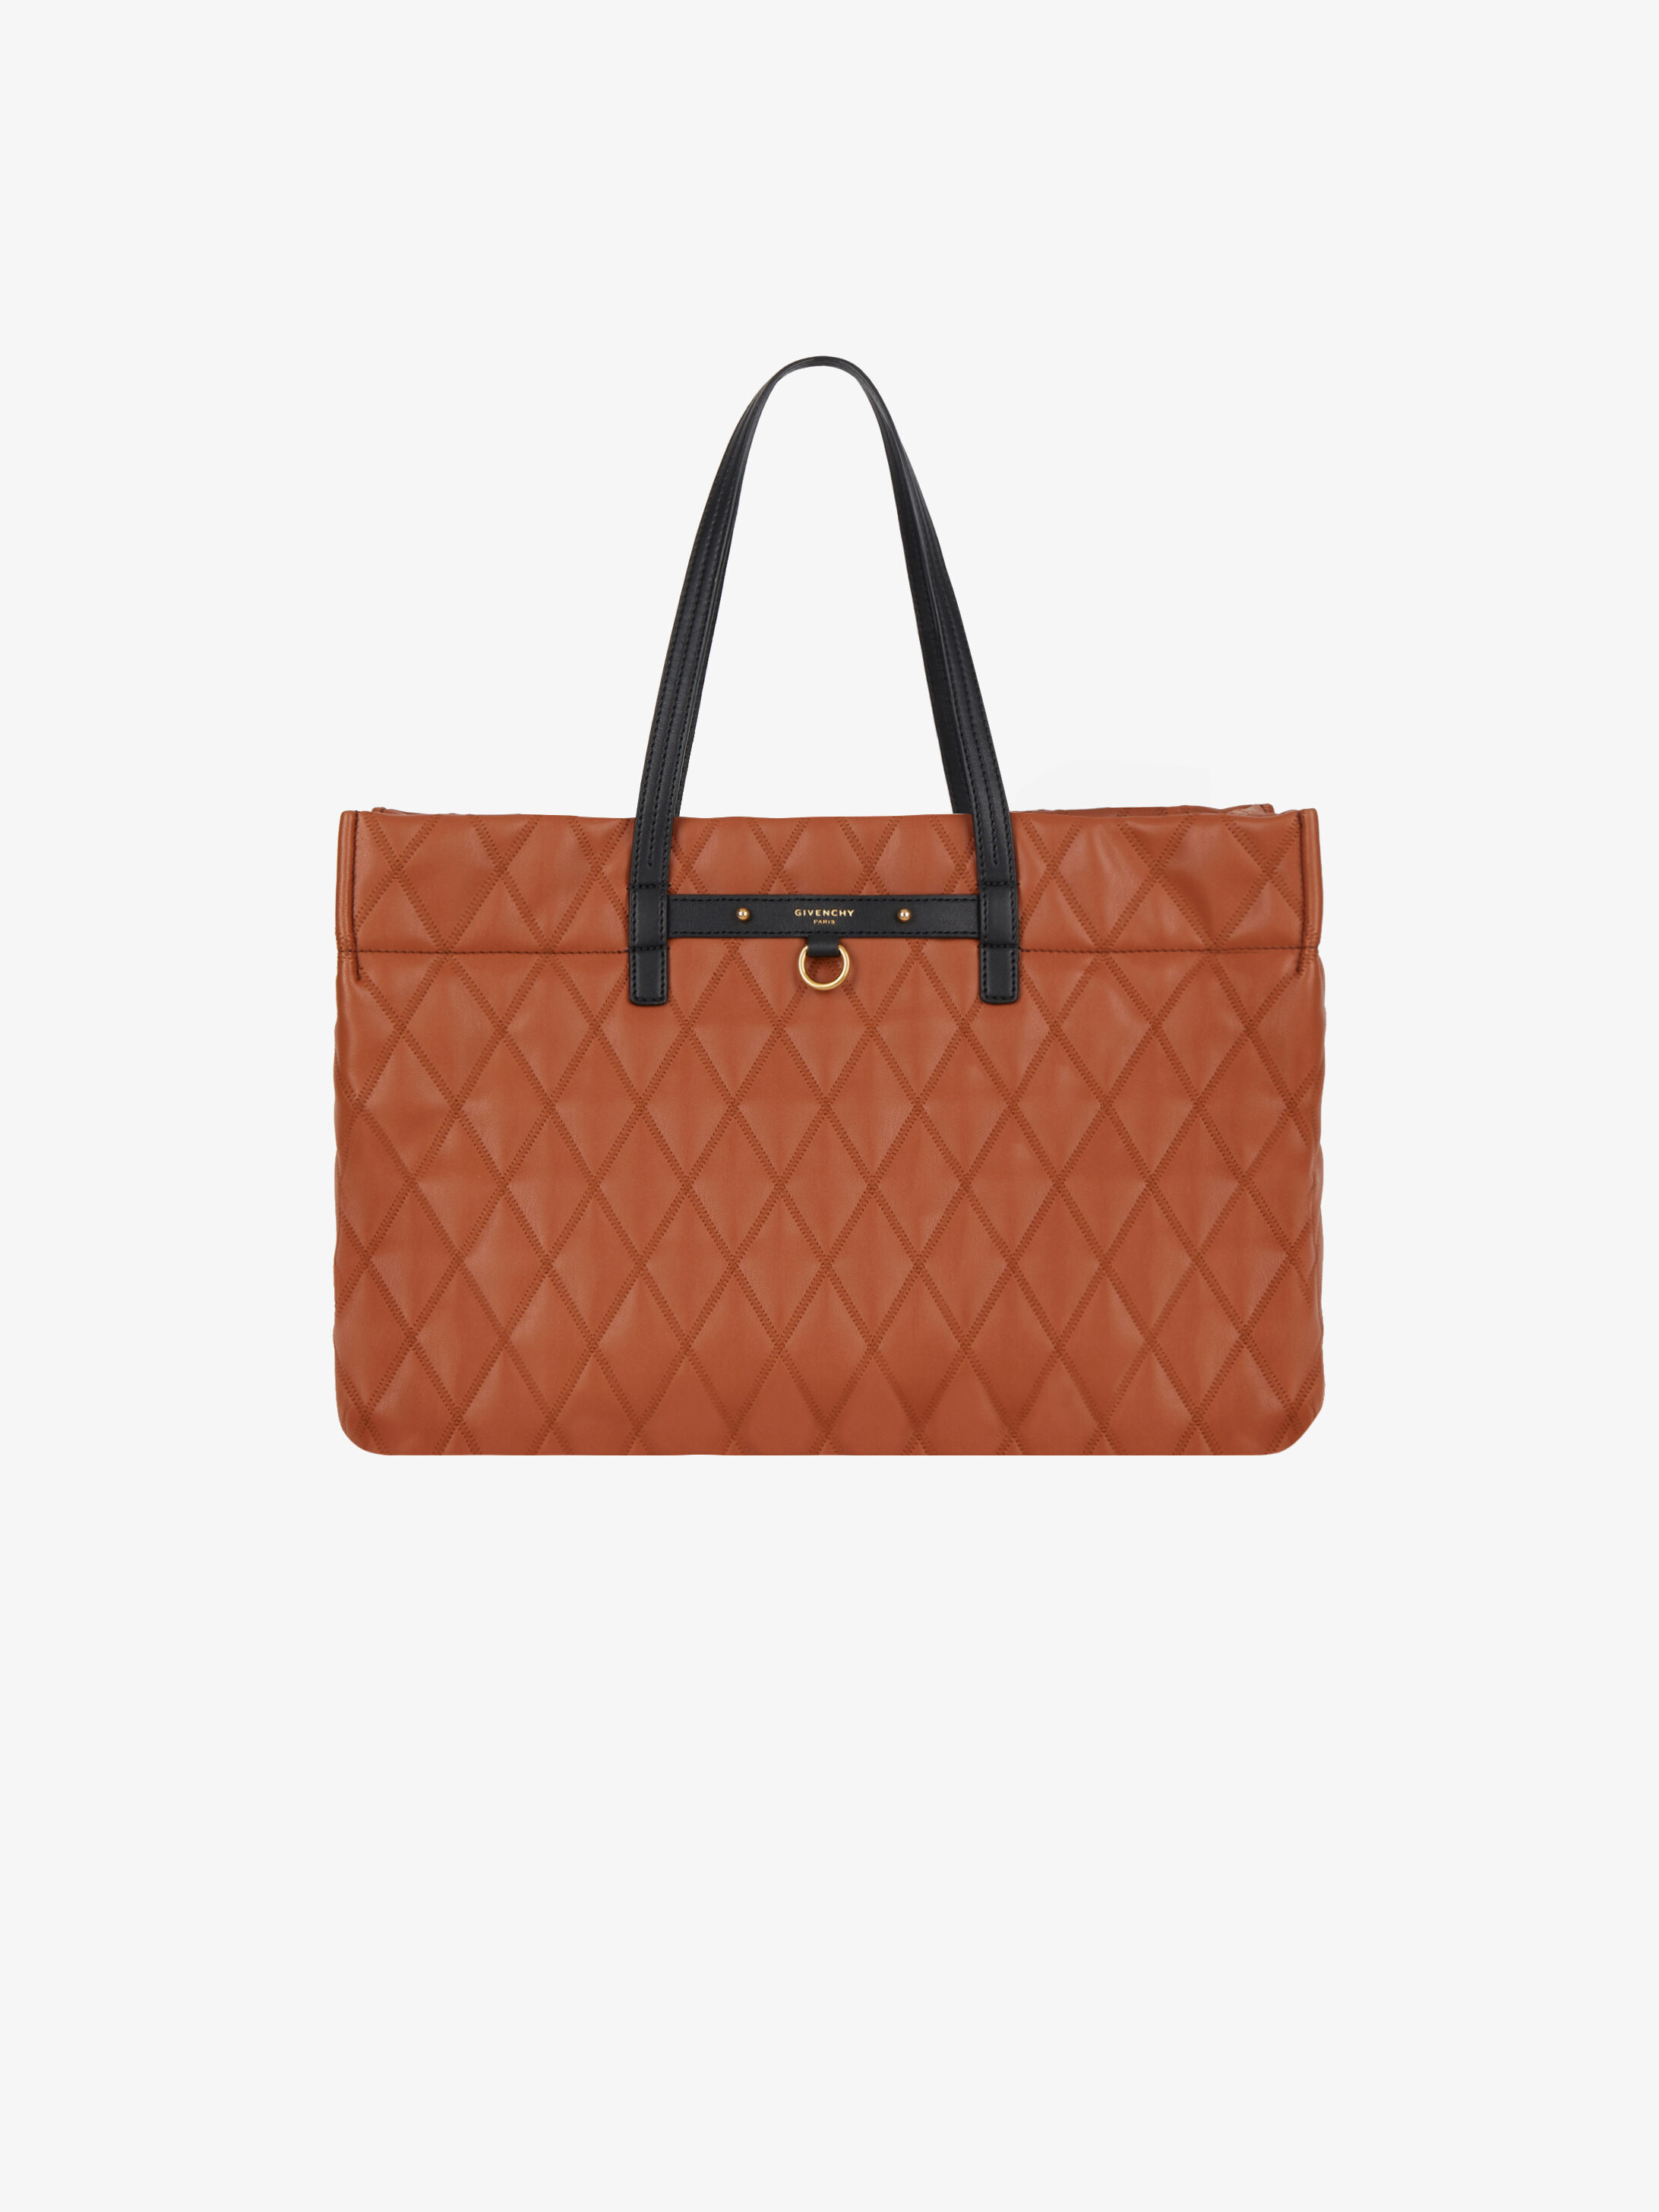 Women s Tote   Backpacks collection by Givenchy.  622f66133c674